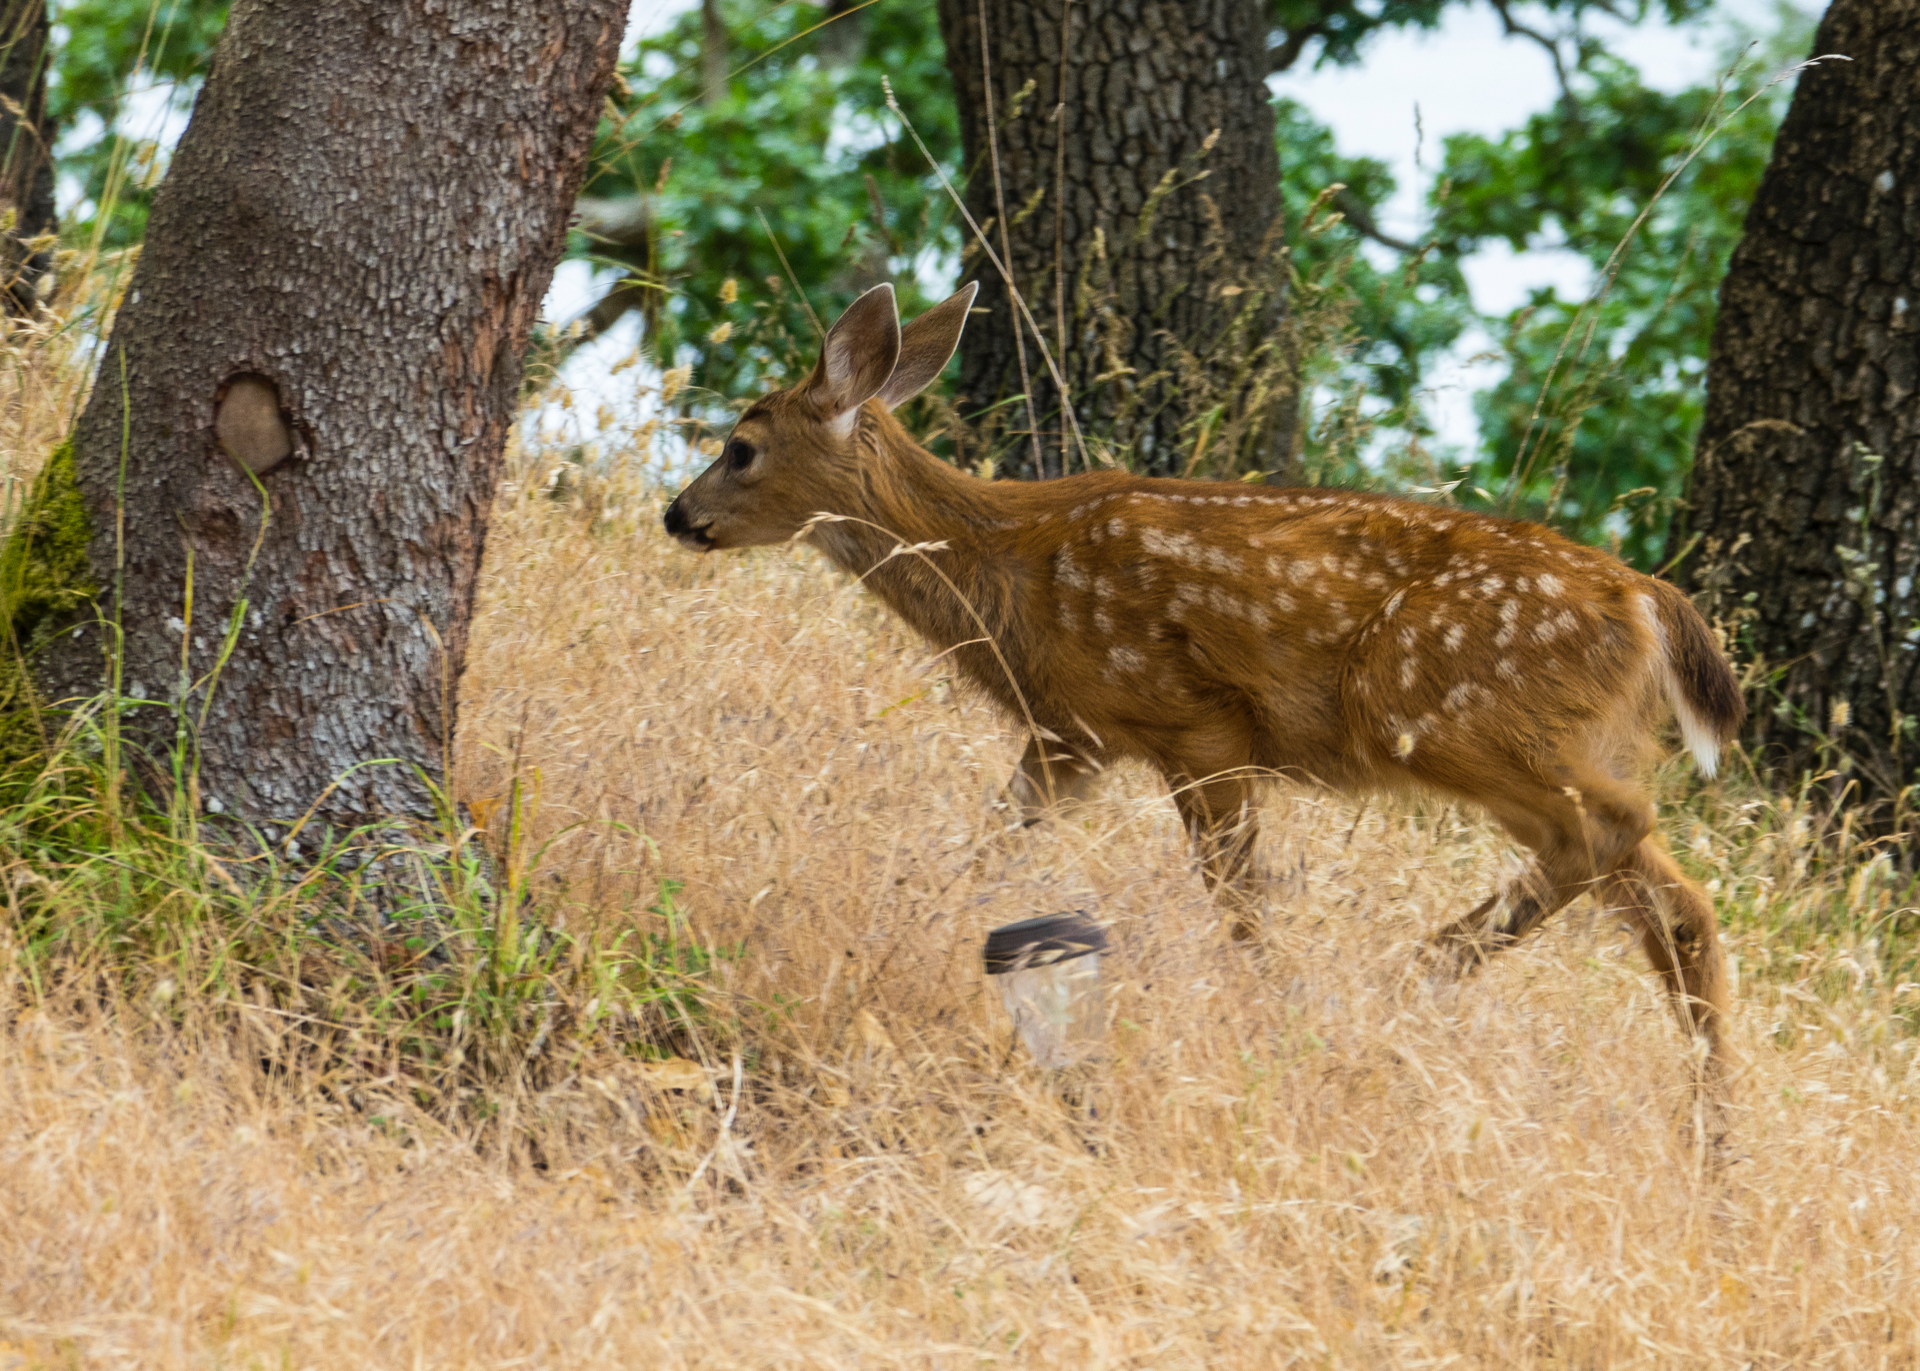 One of the little fawns we saw frequently over the weekend.